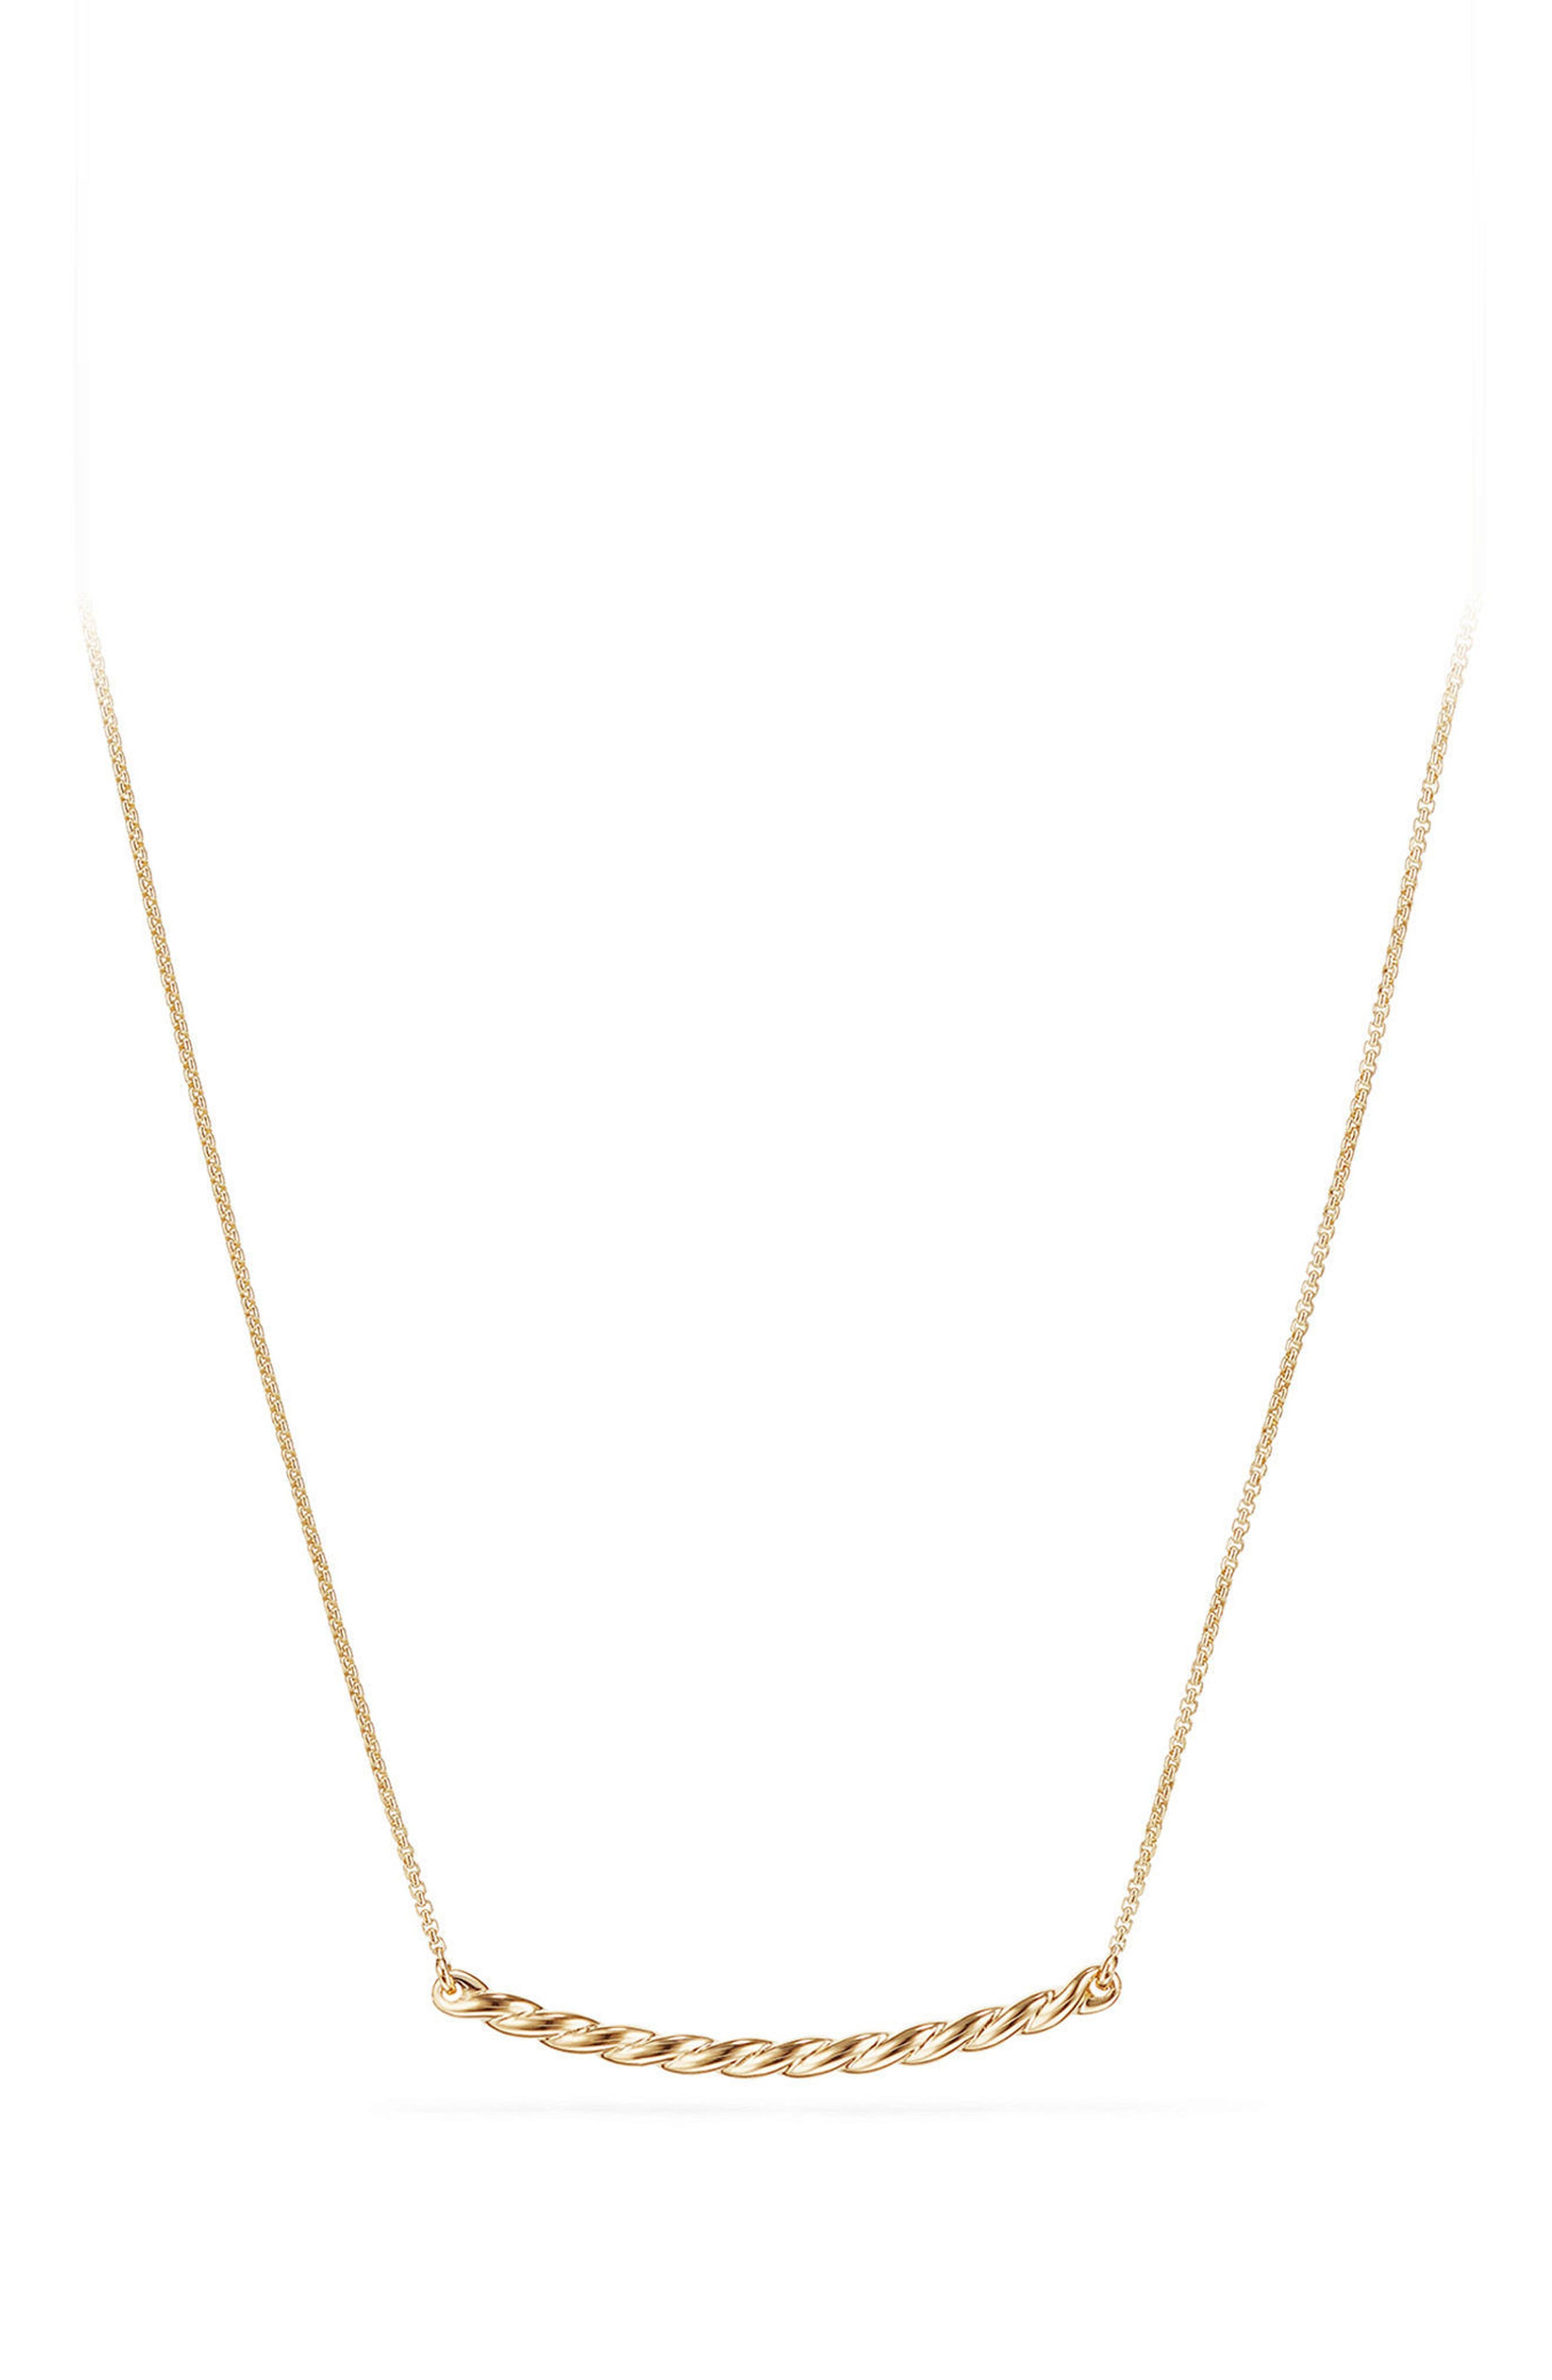 Paveflex Station Necklace in 18K Gold,                         Main,                         color, YELLOW GOLD